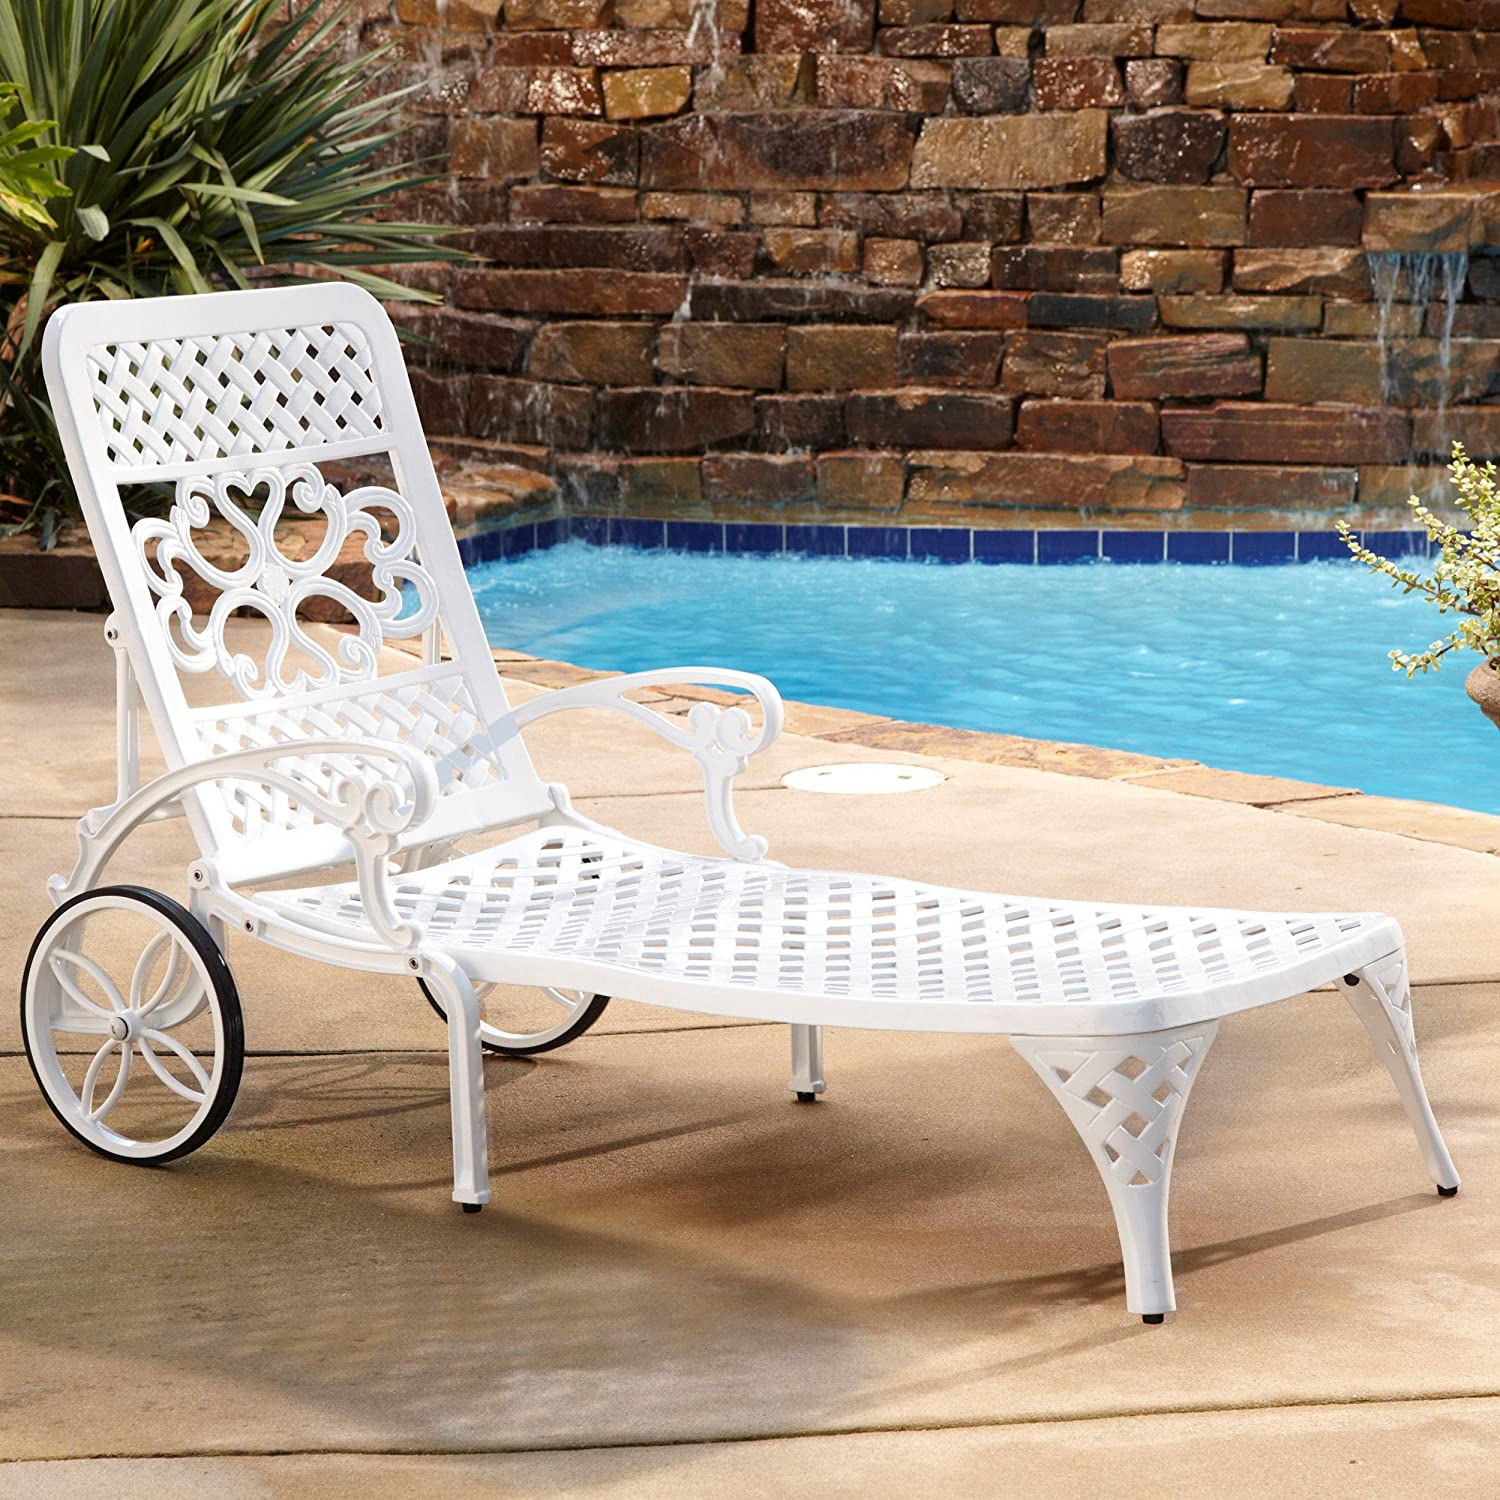 Charming Amazon.com : Home Styles Biscayne Chaise Lounge Chair, White : Patio Lounge  Chairs : Garden U0026 Outdoor